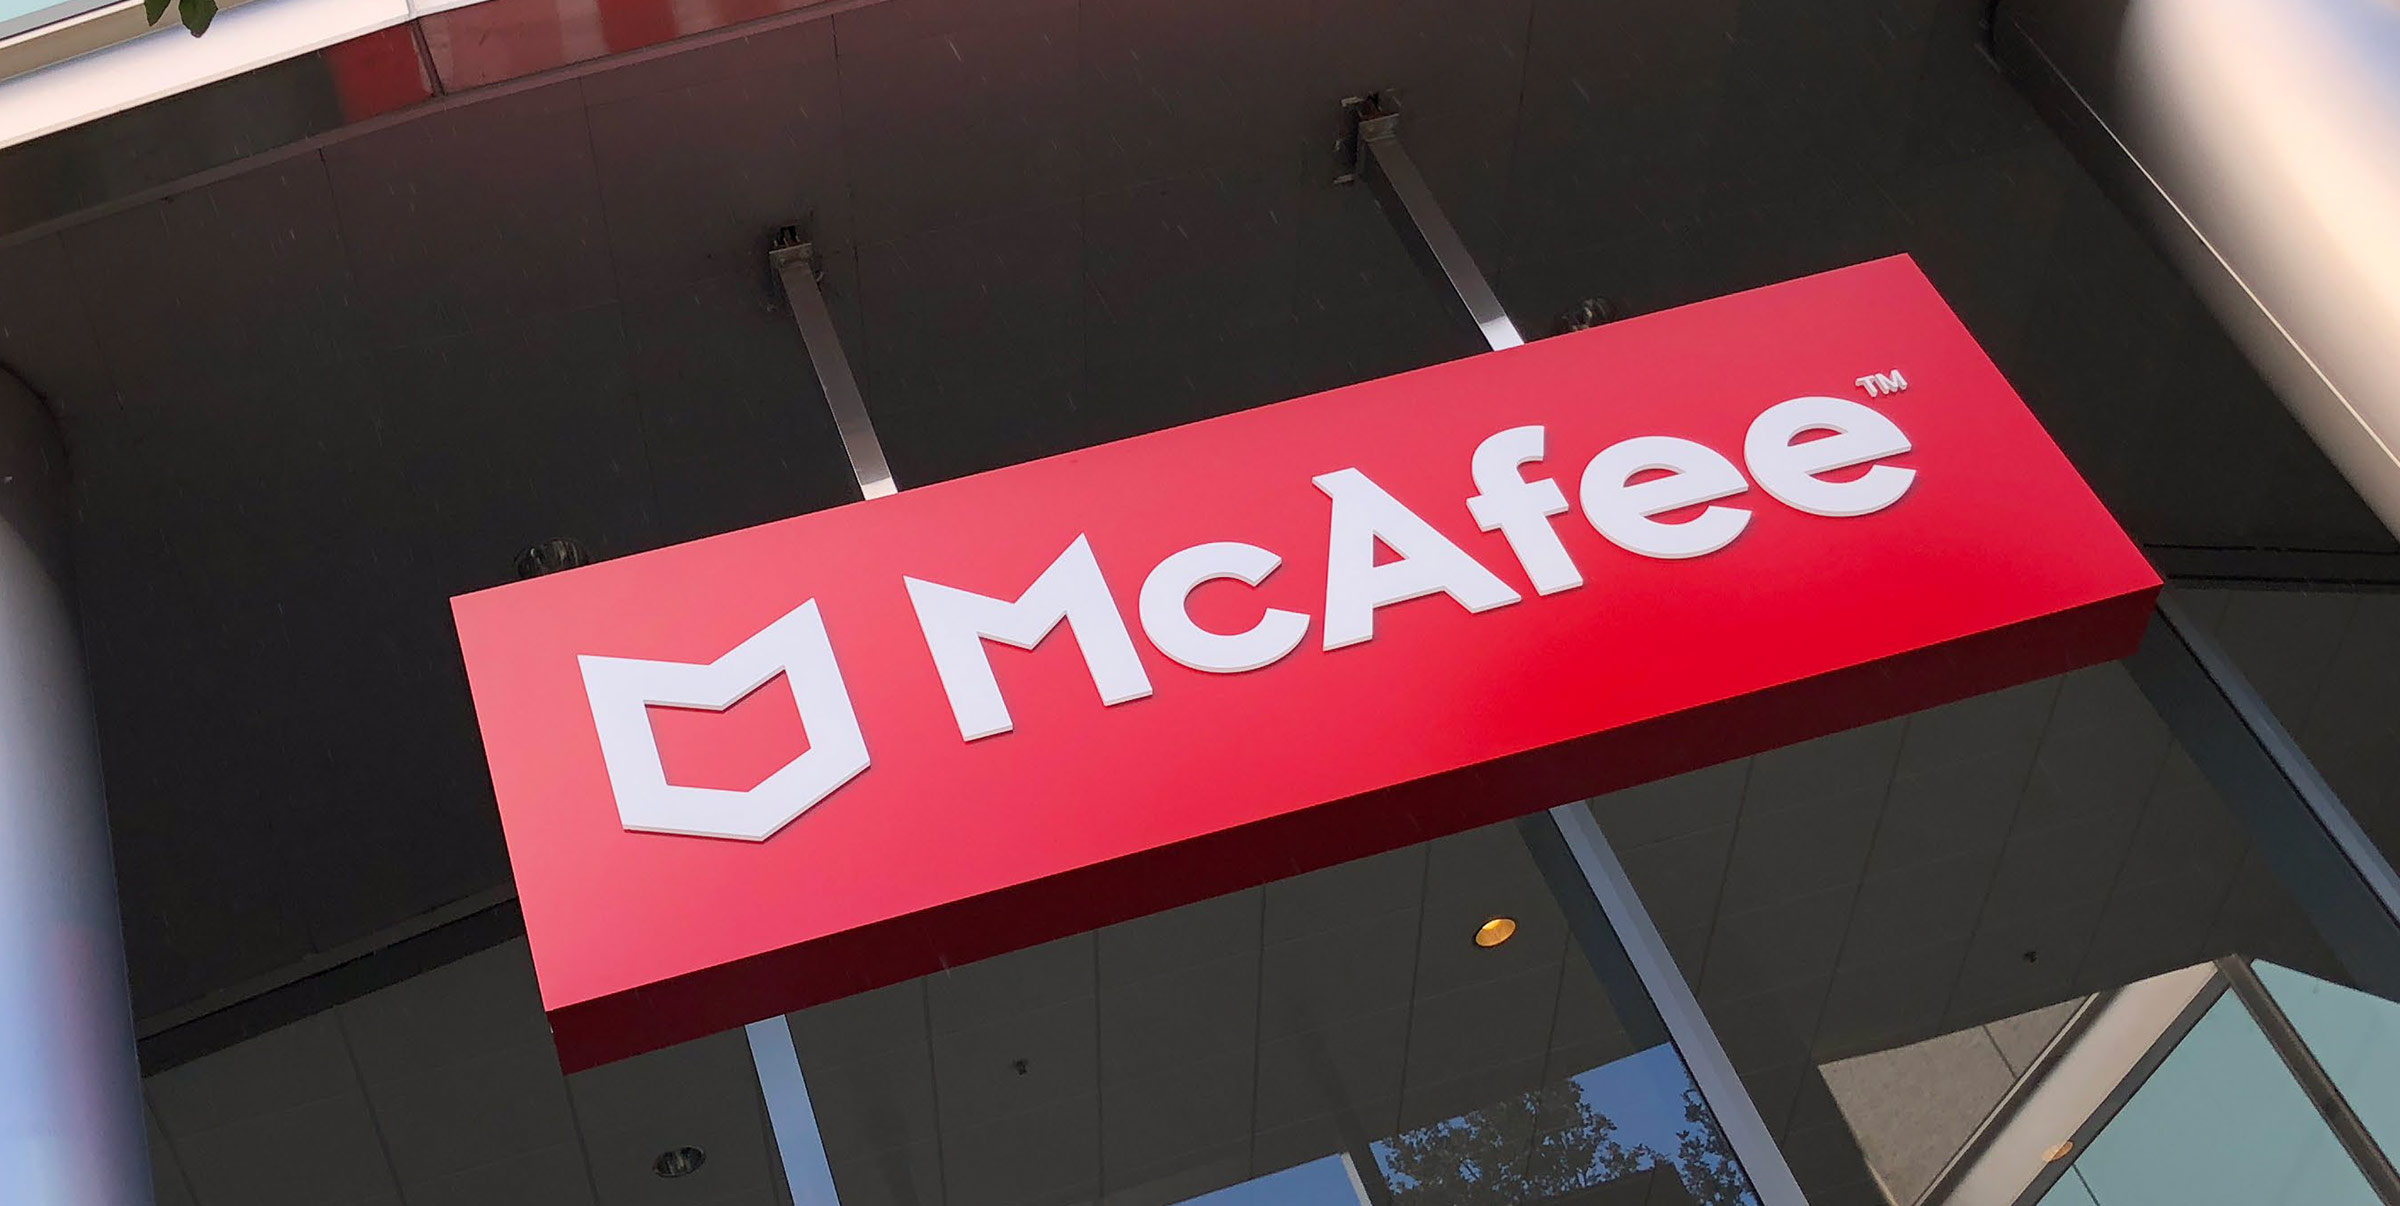 MCAFEE - Solid Branding